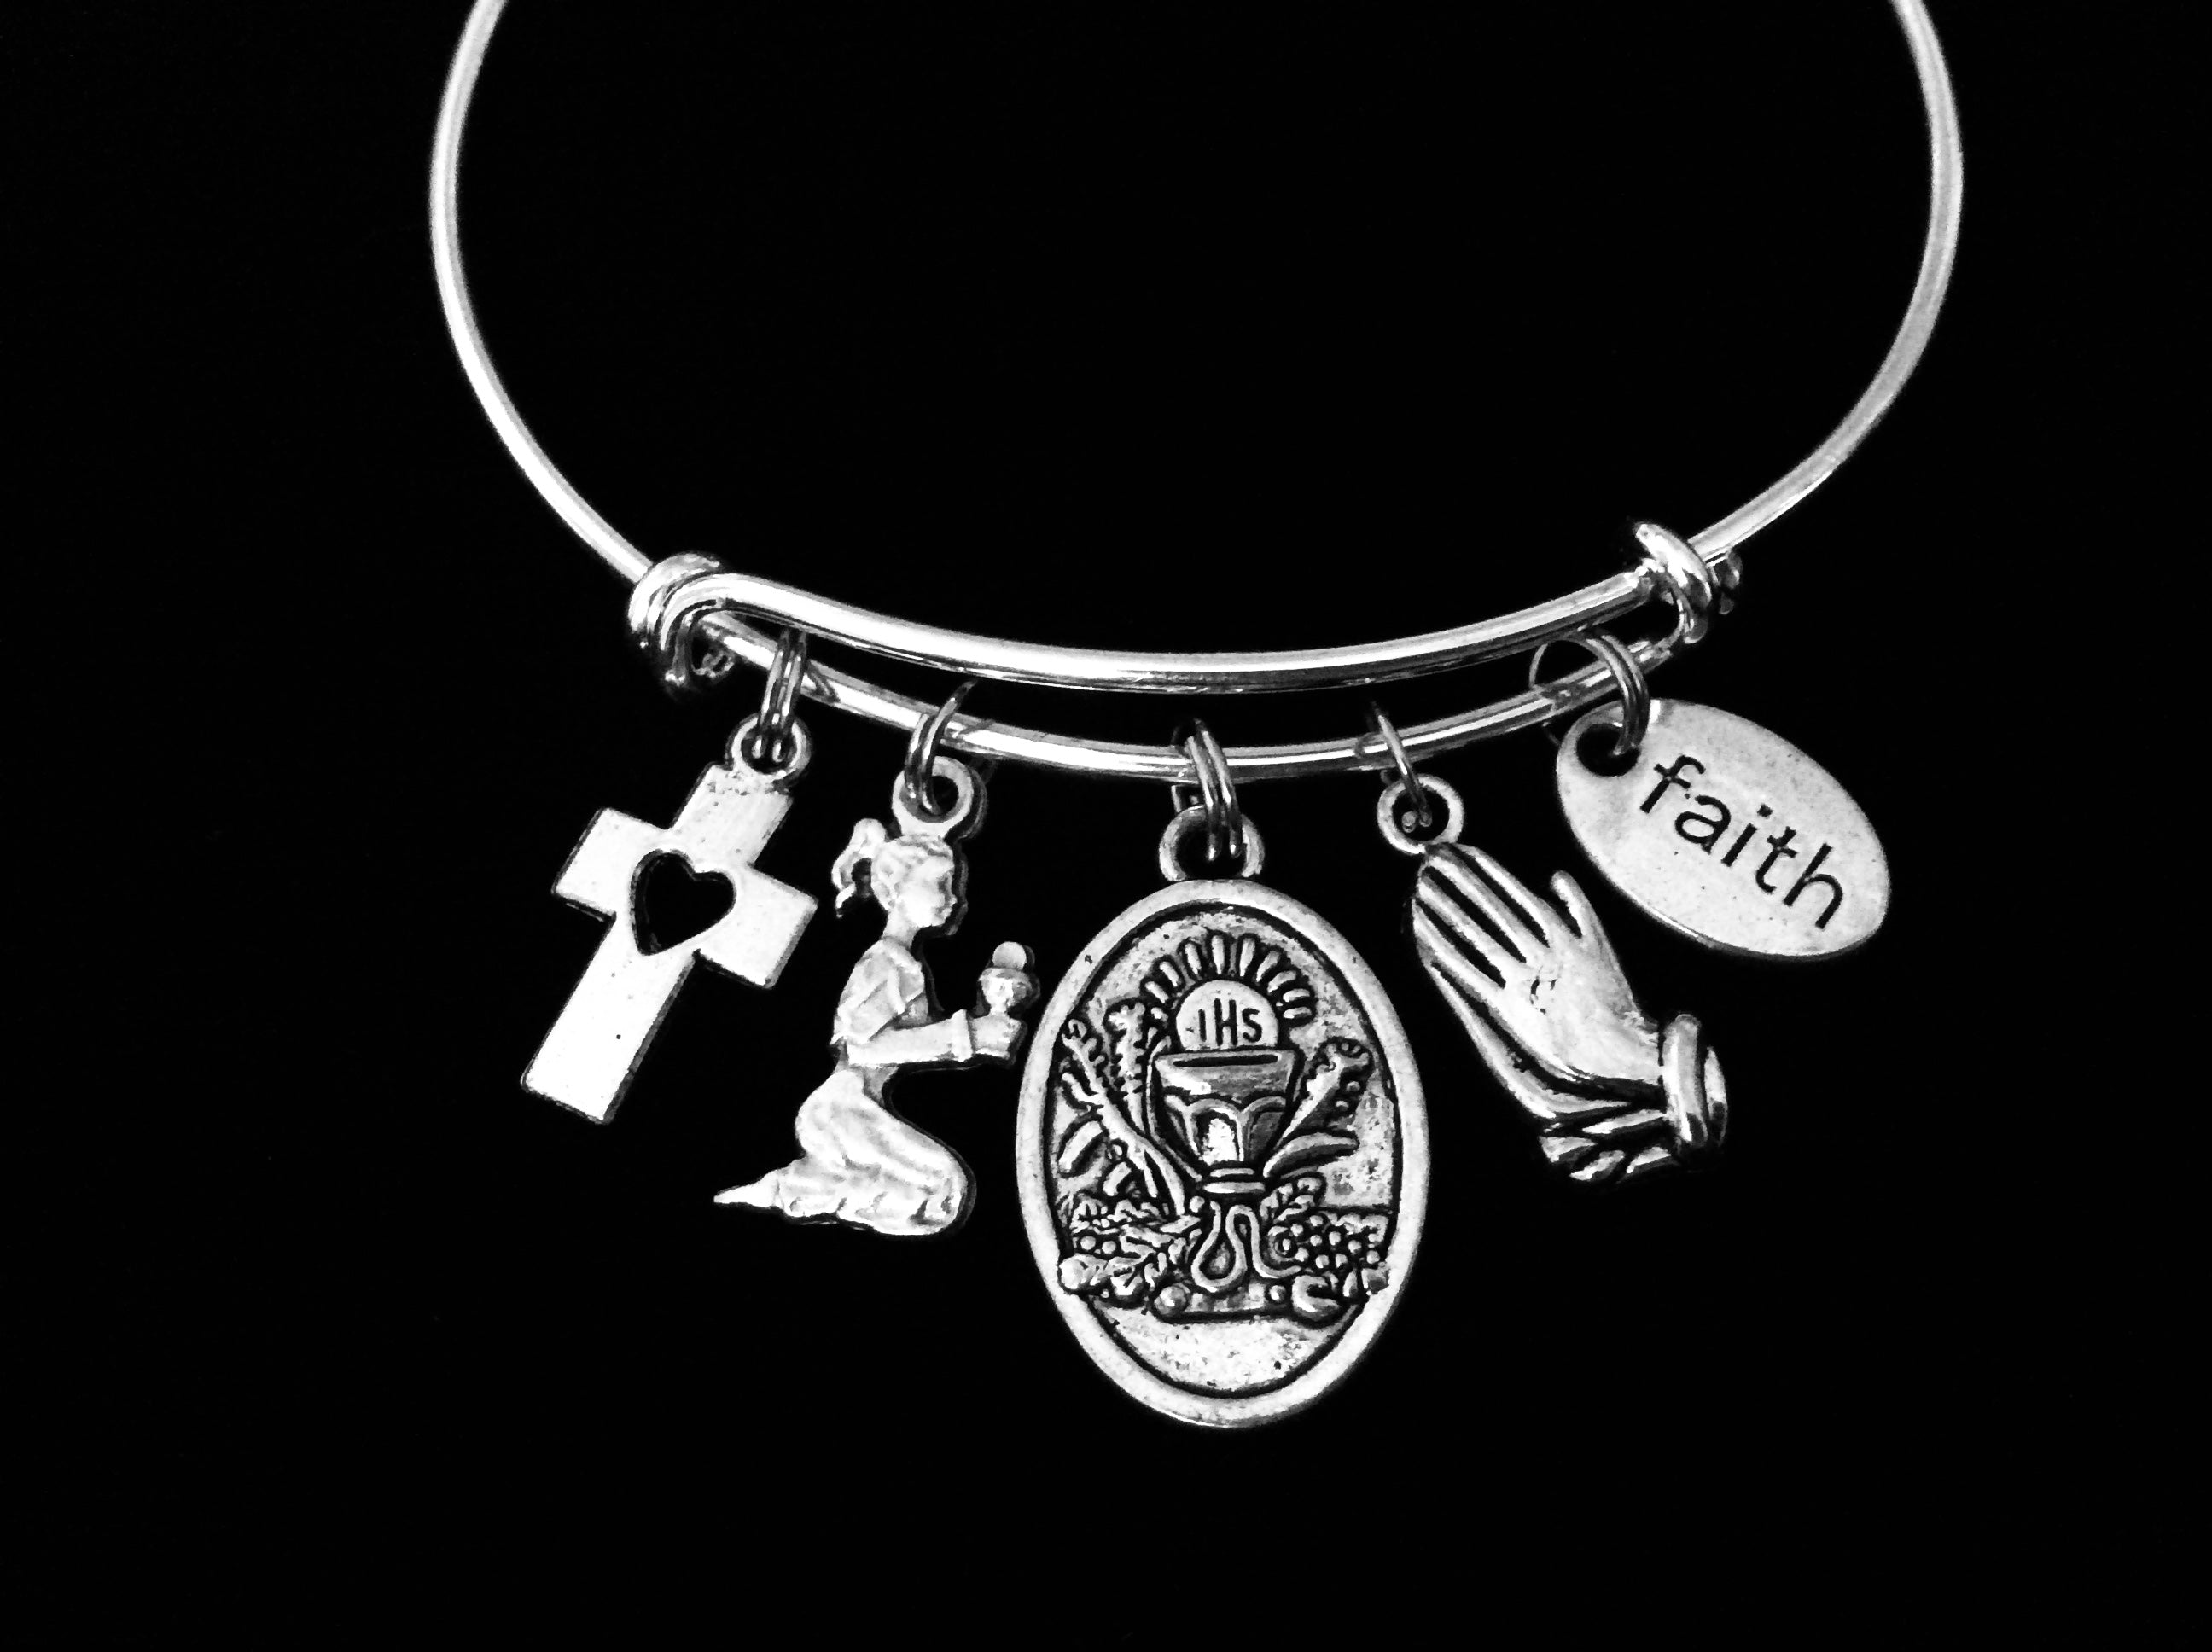 4952bf1a87e611 First Holy Communion Jewelry Adjustable Bracelet Expandable Silver Ban -  Jules Obsession